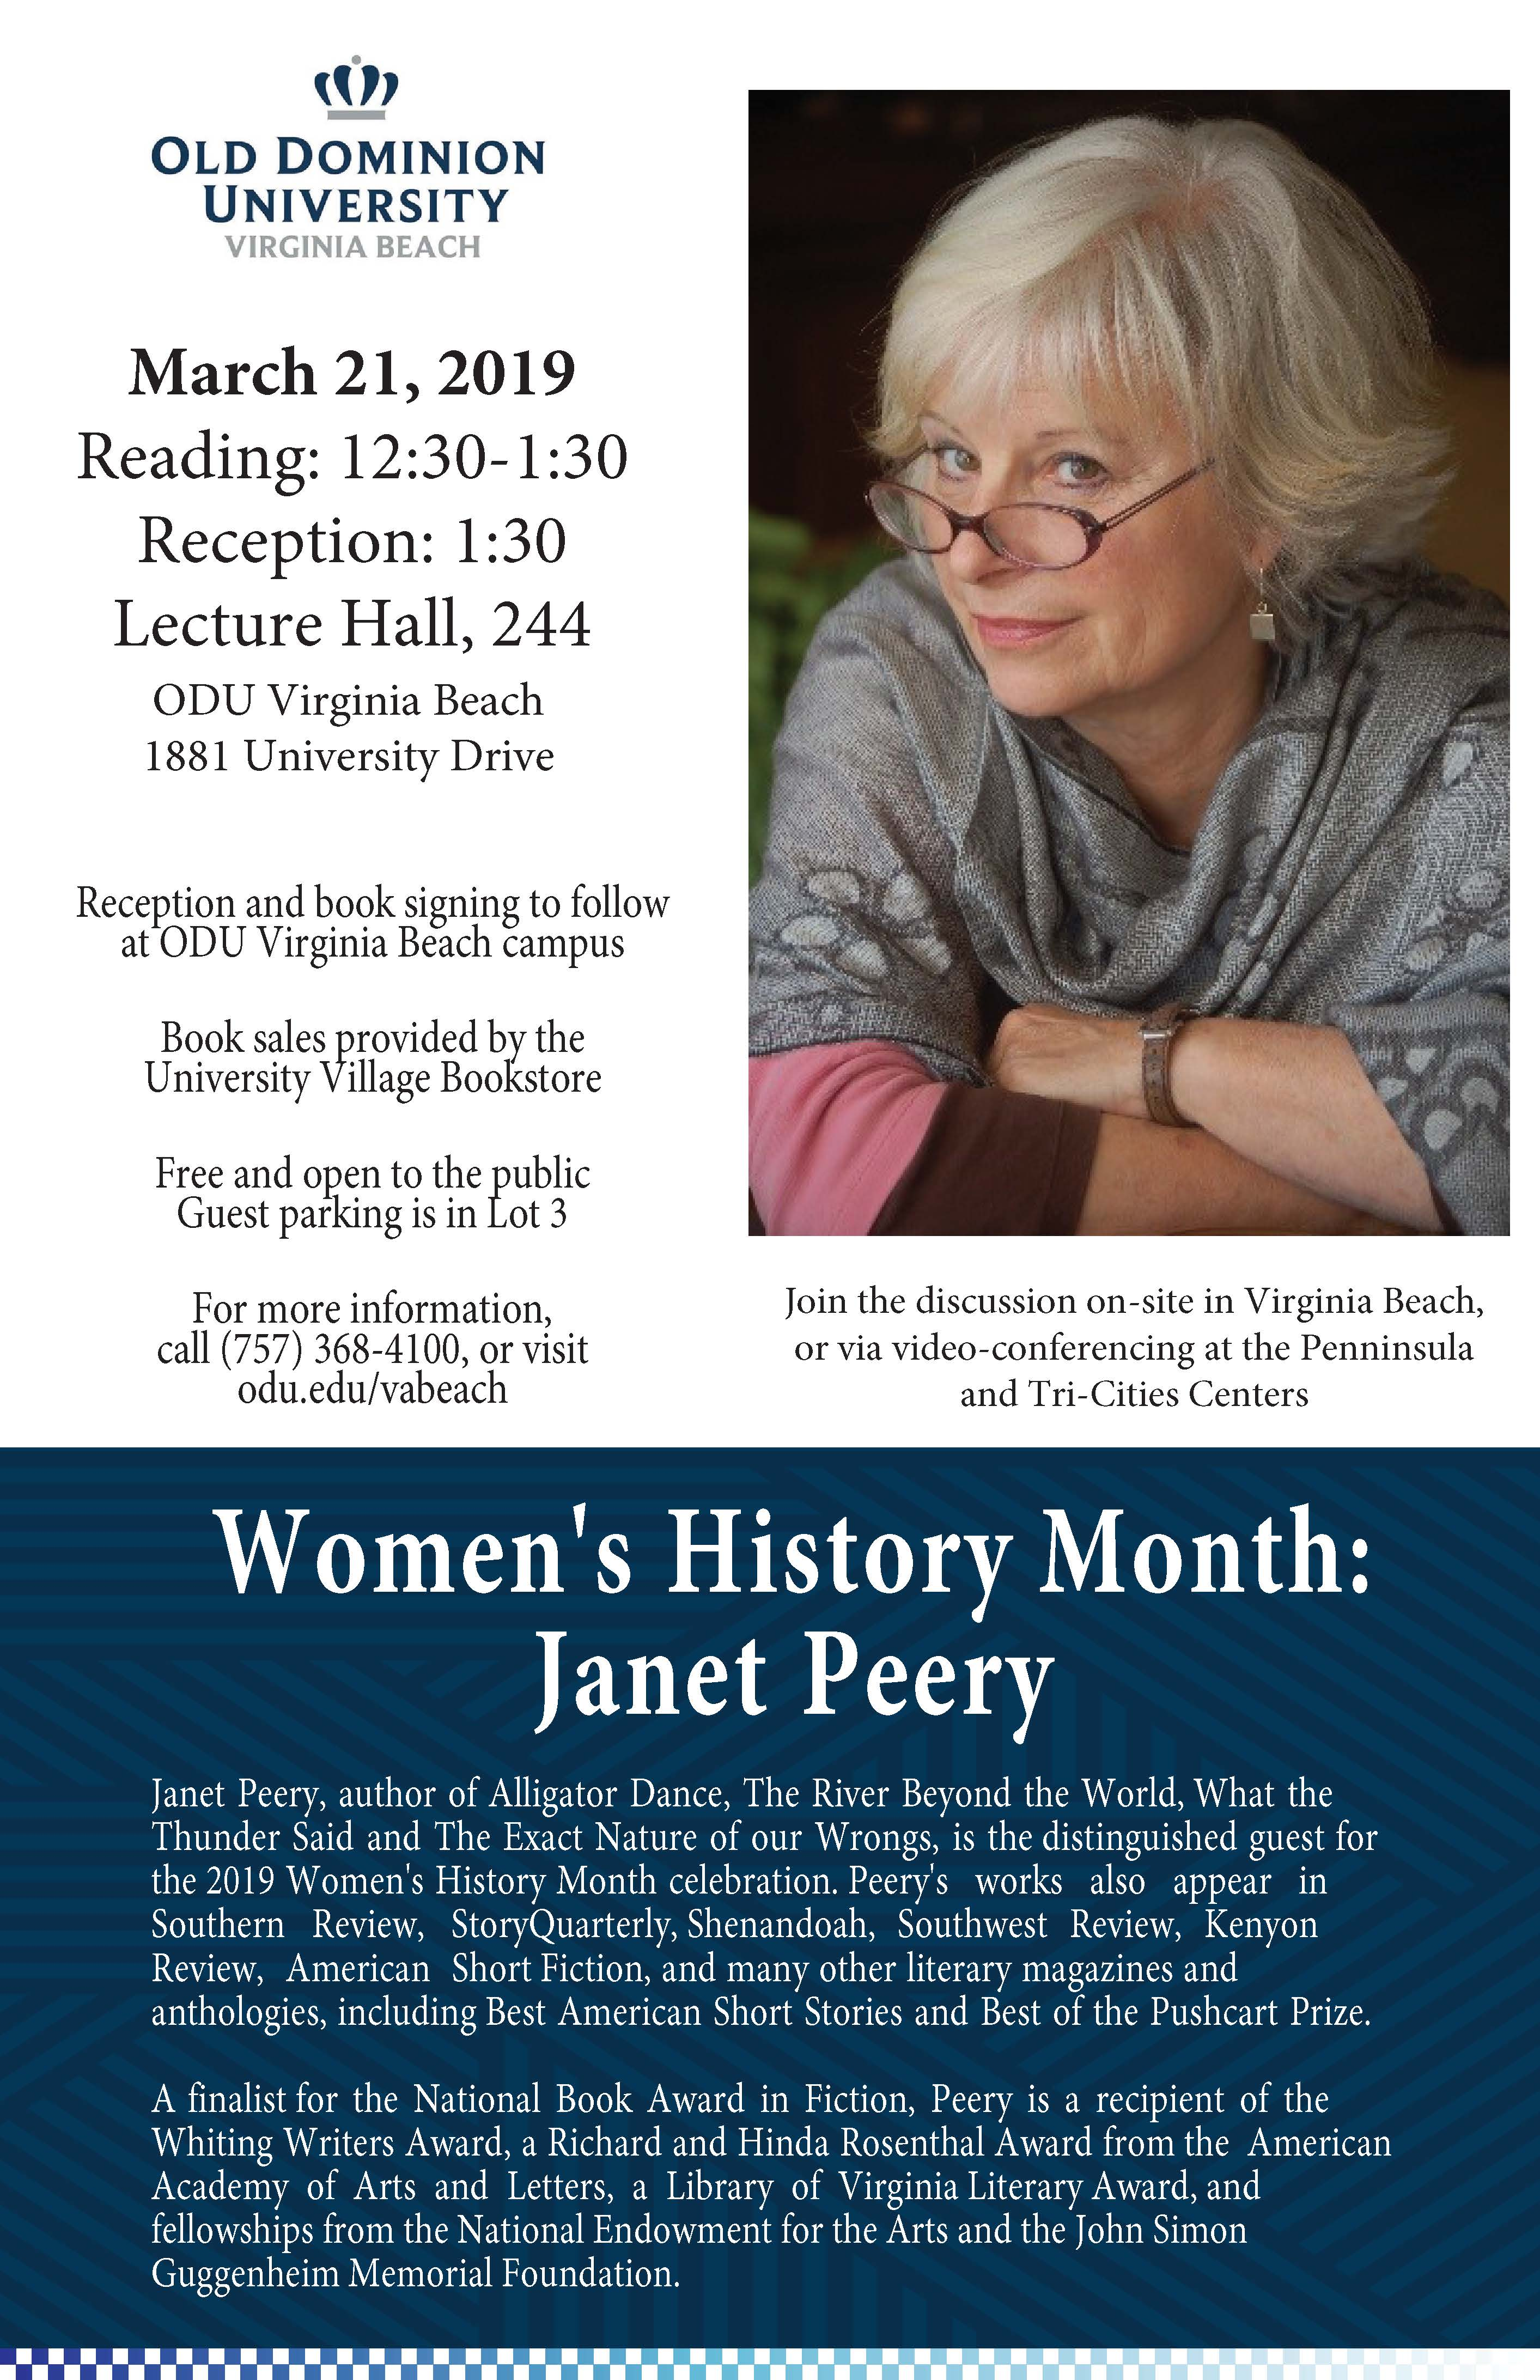 Janet Peery Reading-March 21